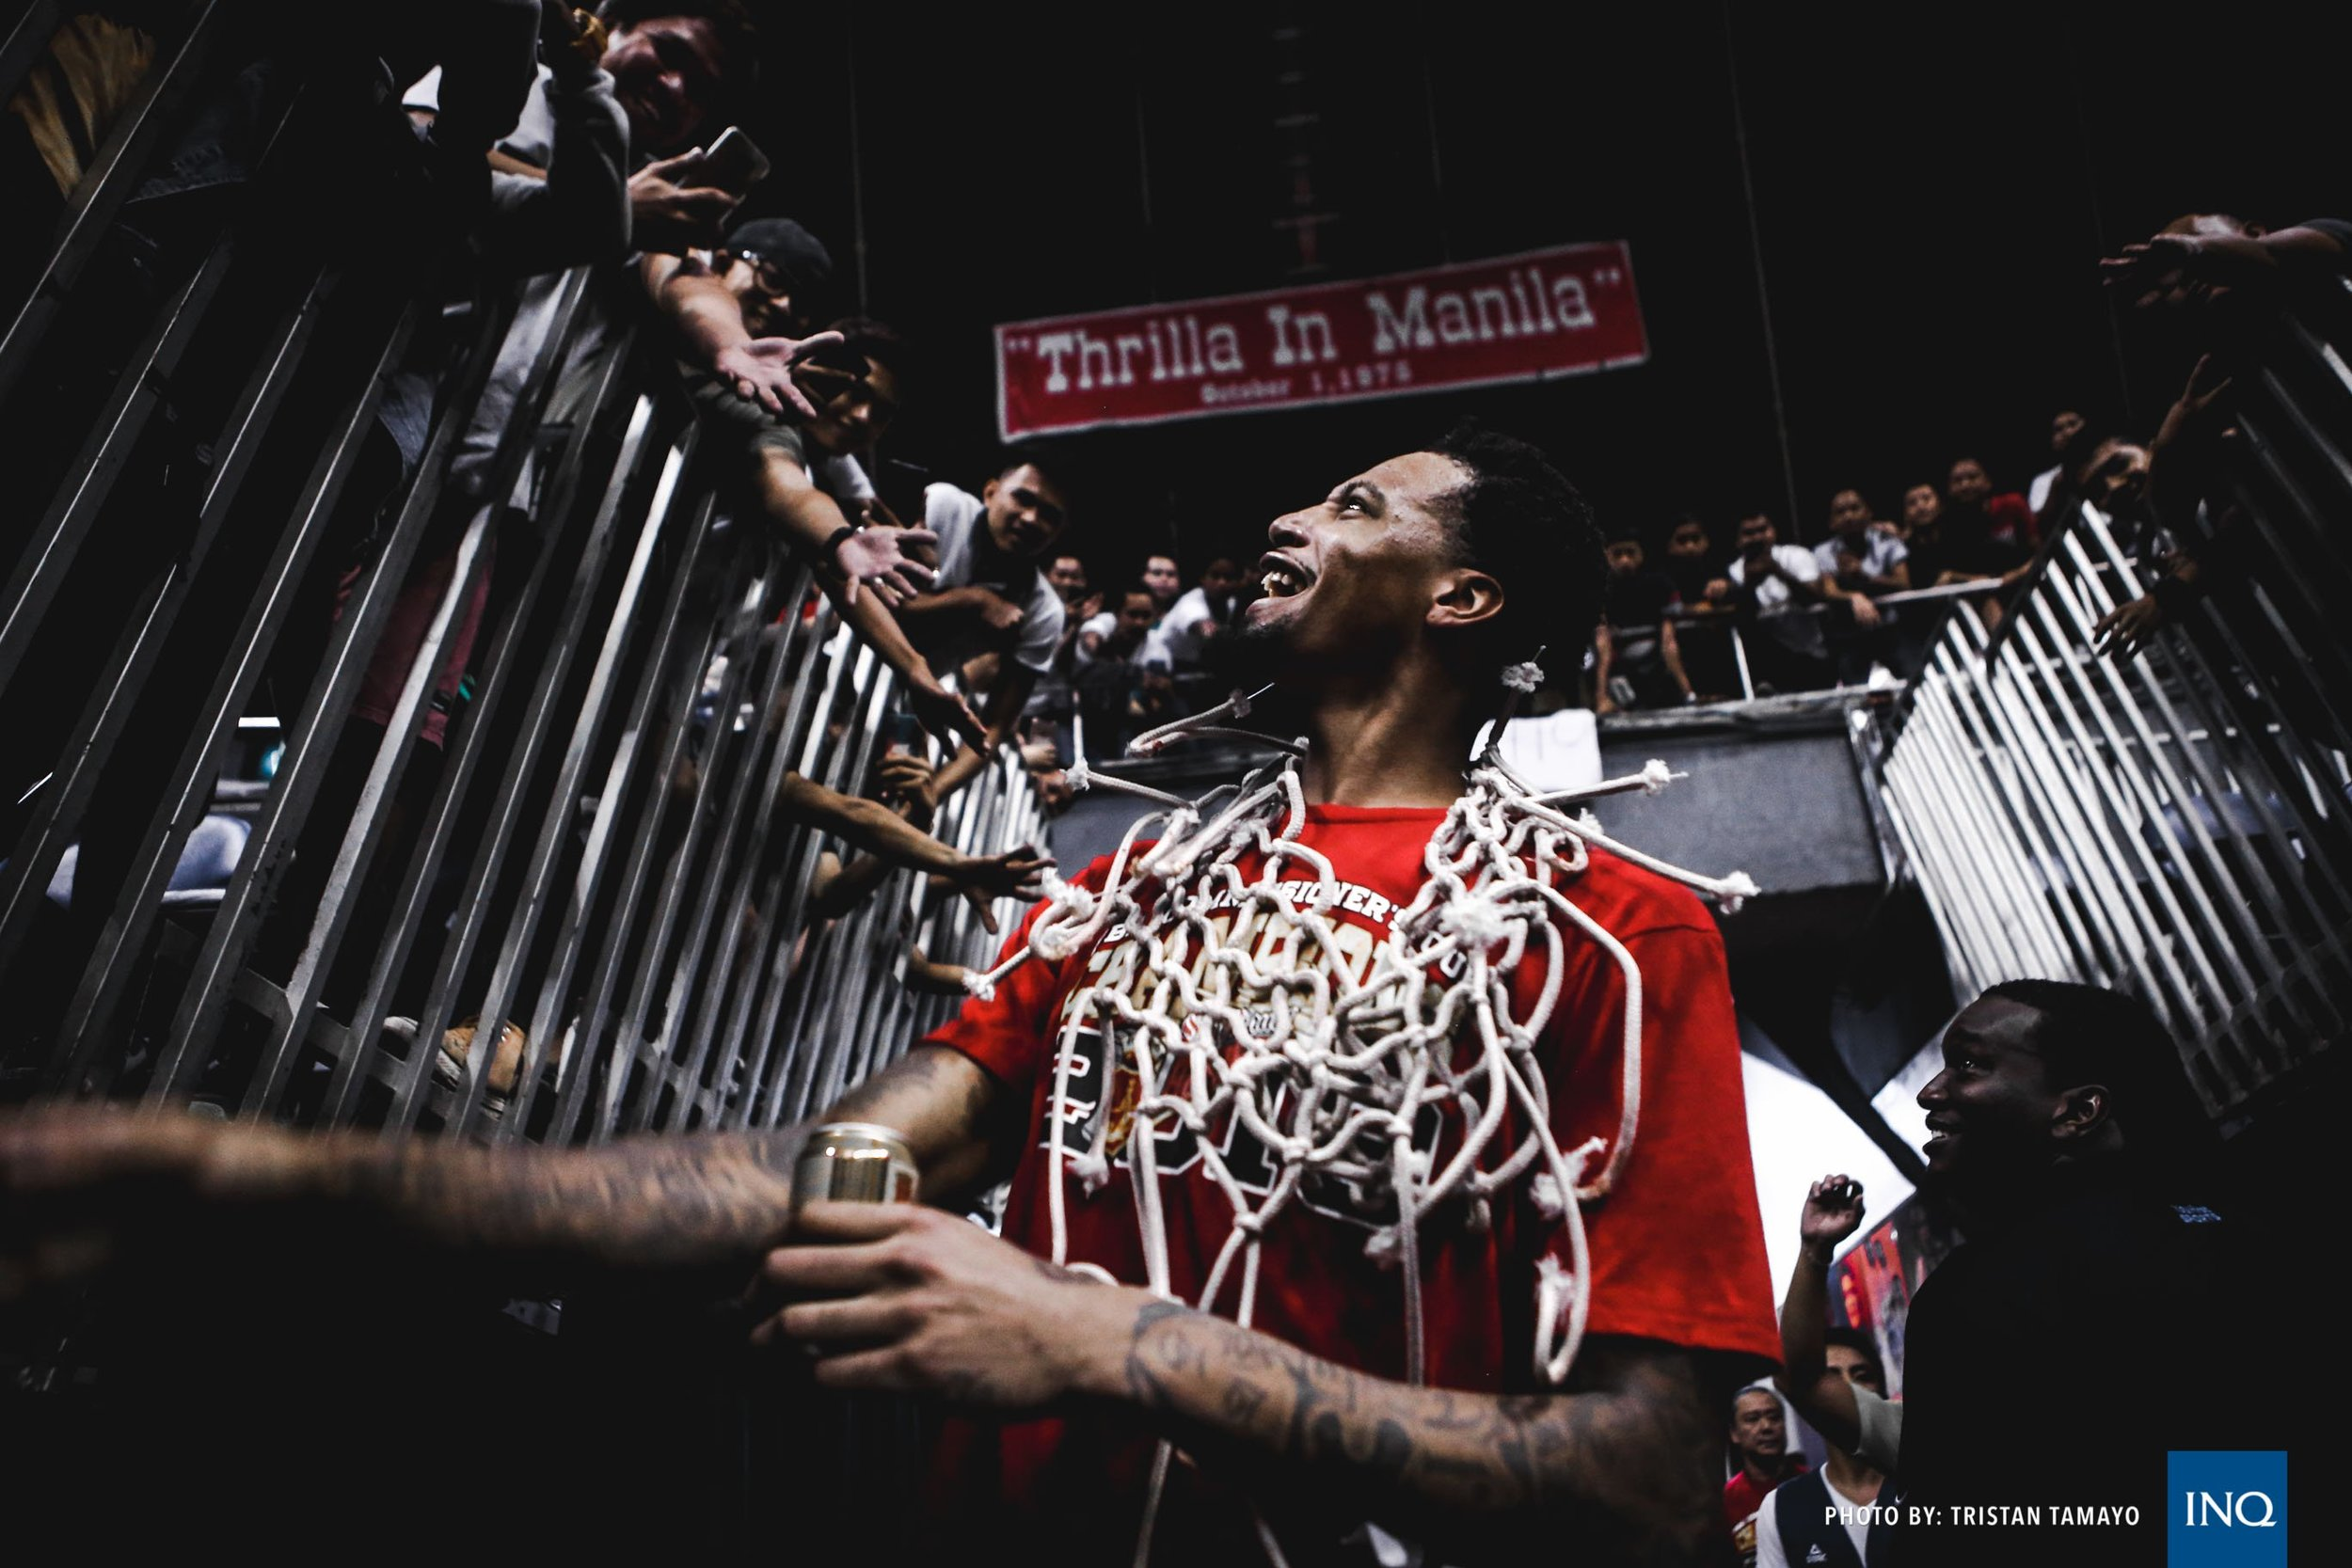 Thrilla In Manila - Chris McCullough celebrates as he wins the Commissioners cup title.